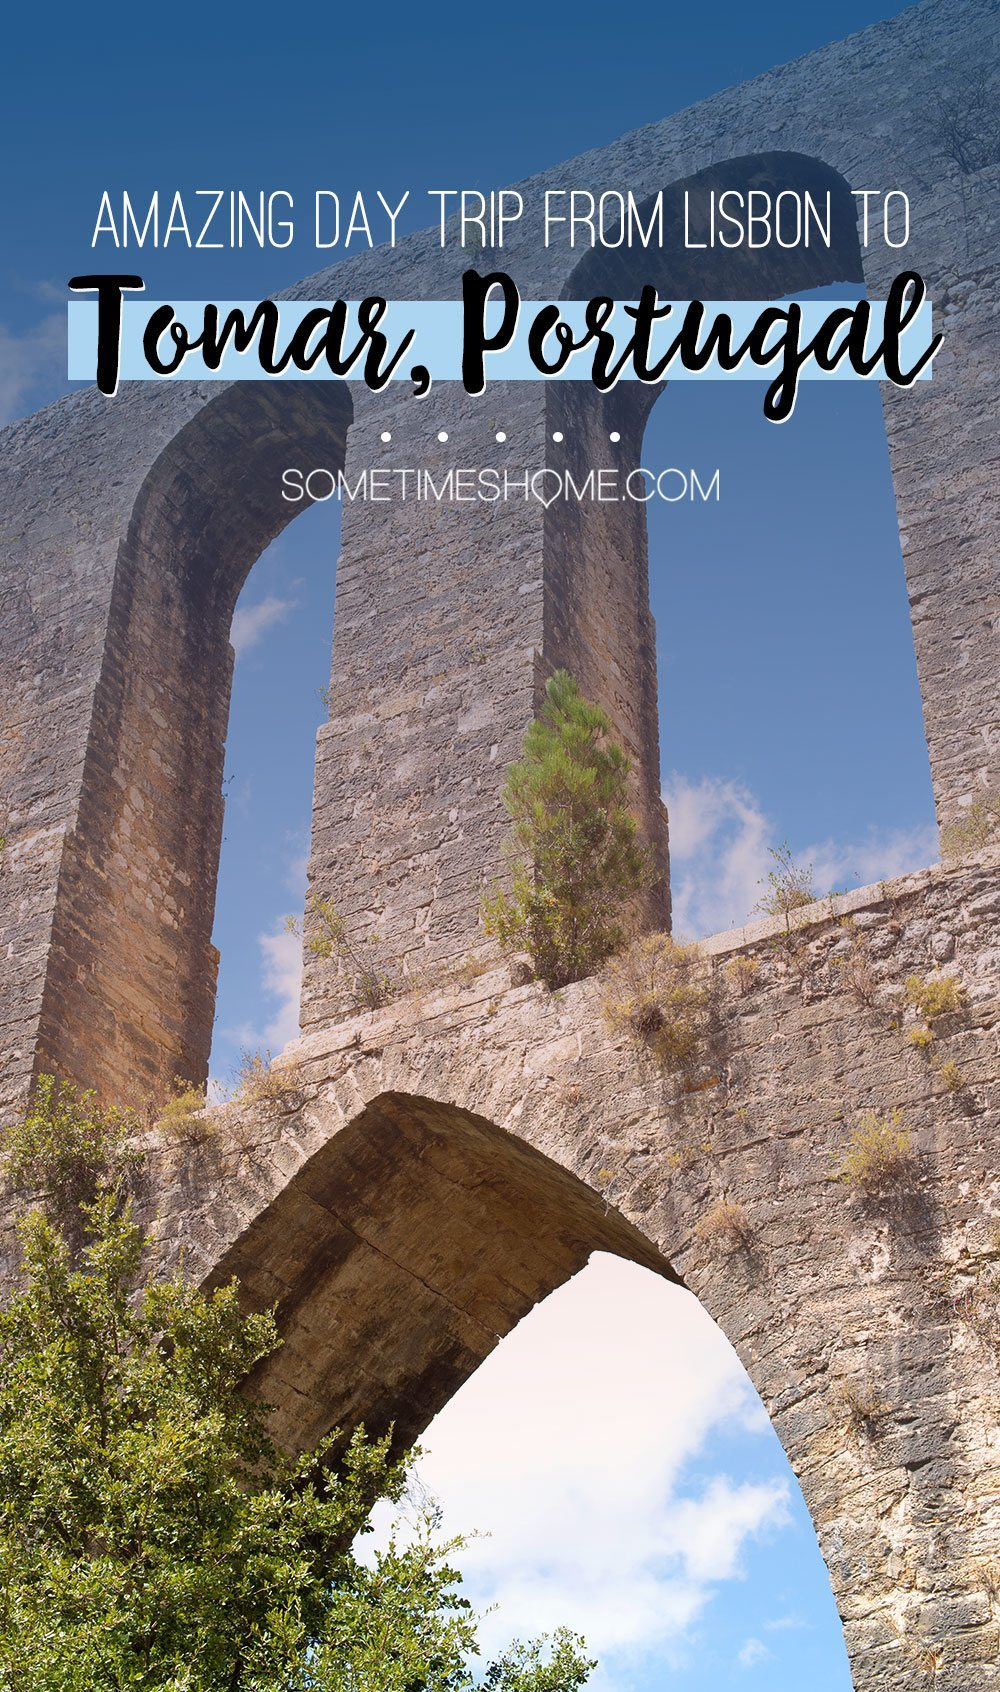 Amazing Day Trip from Lisbon to Tomar Portugal. Photos, tips and advice on Sometimes Home travel blog.